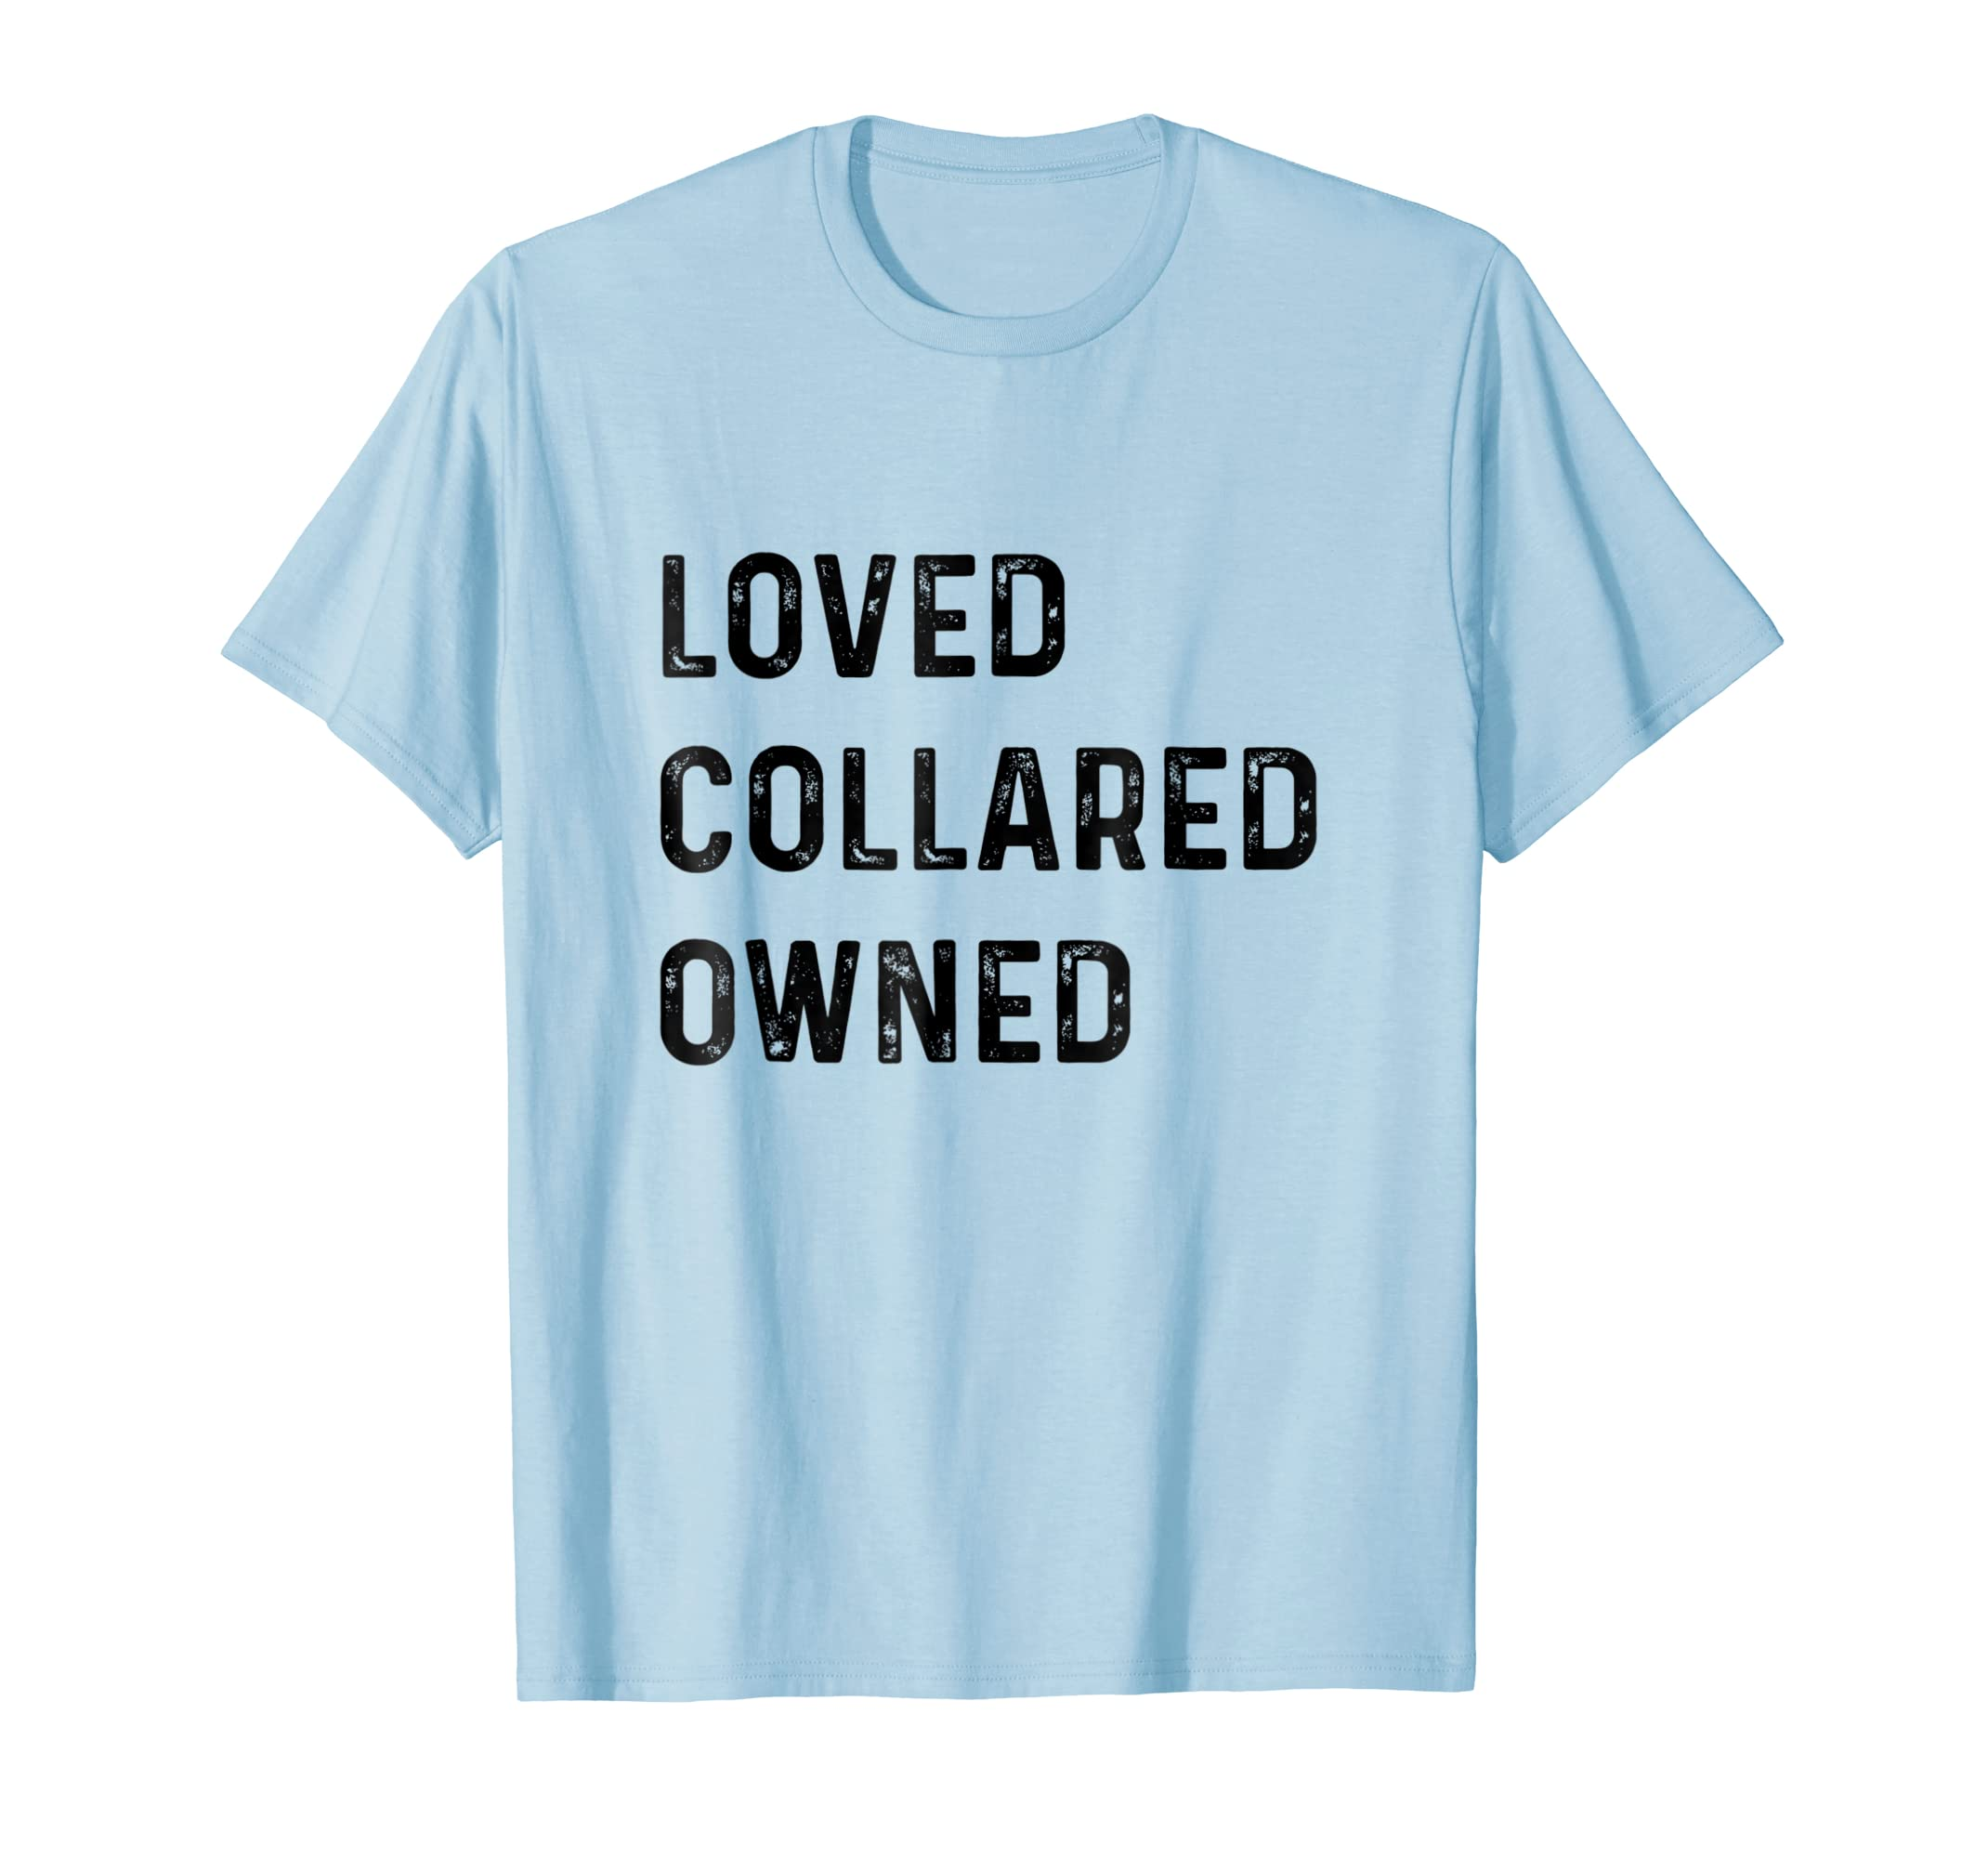 Loved Collared Owned  Kinky Sub Sissy BDSM Tee Shirt